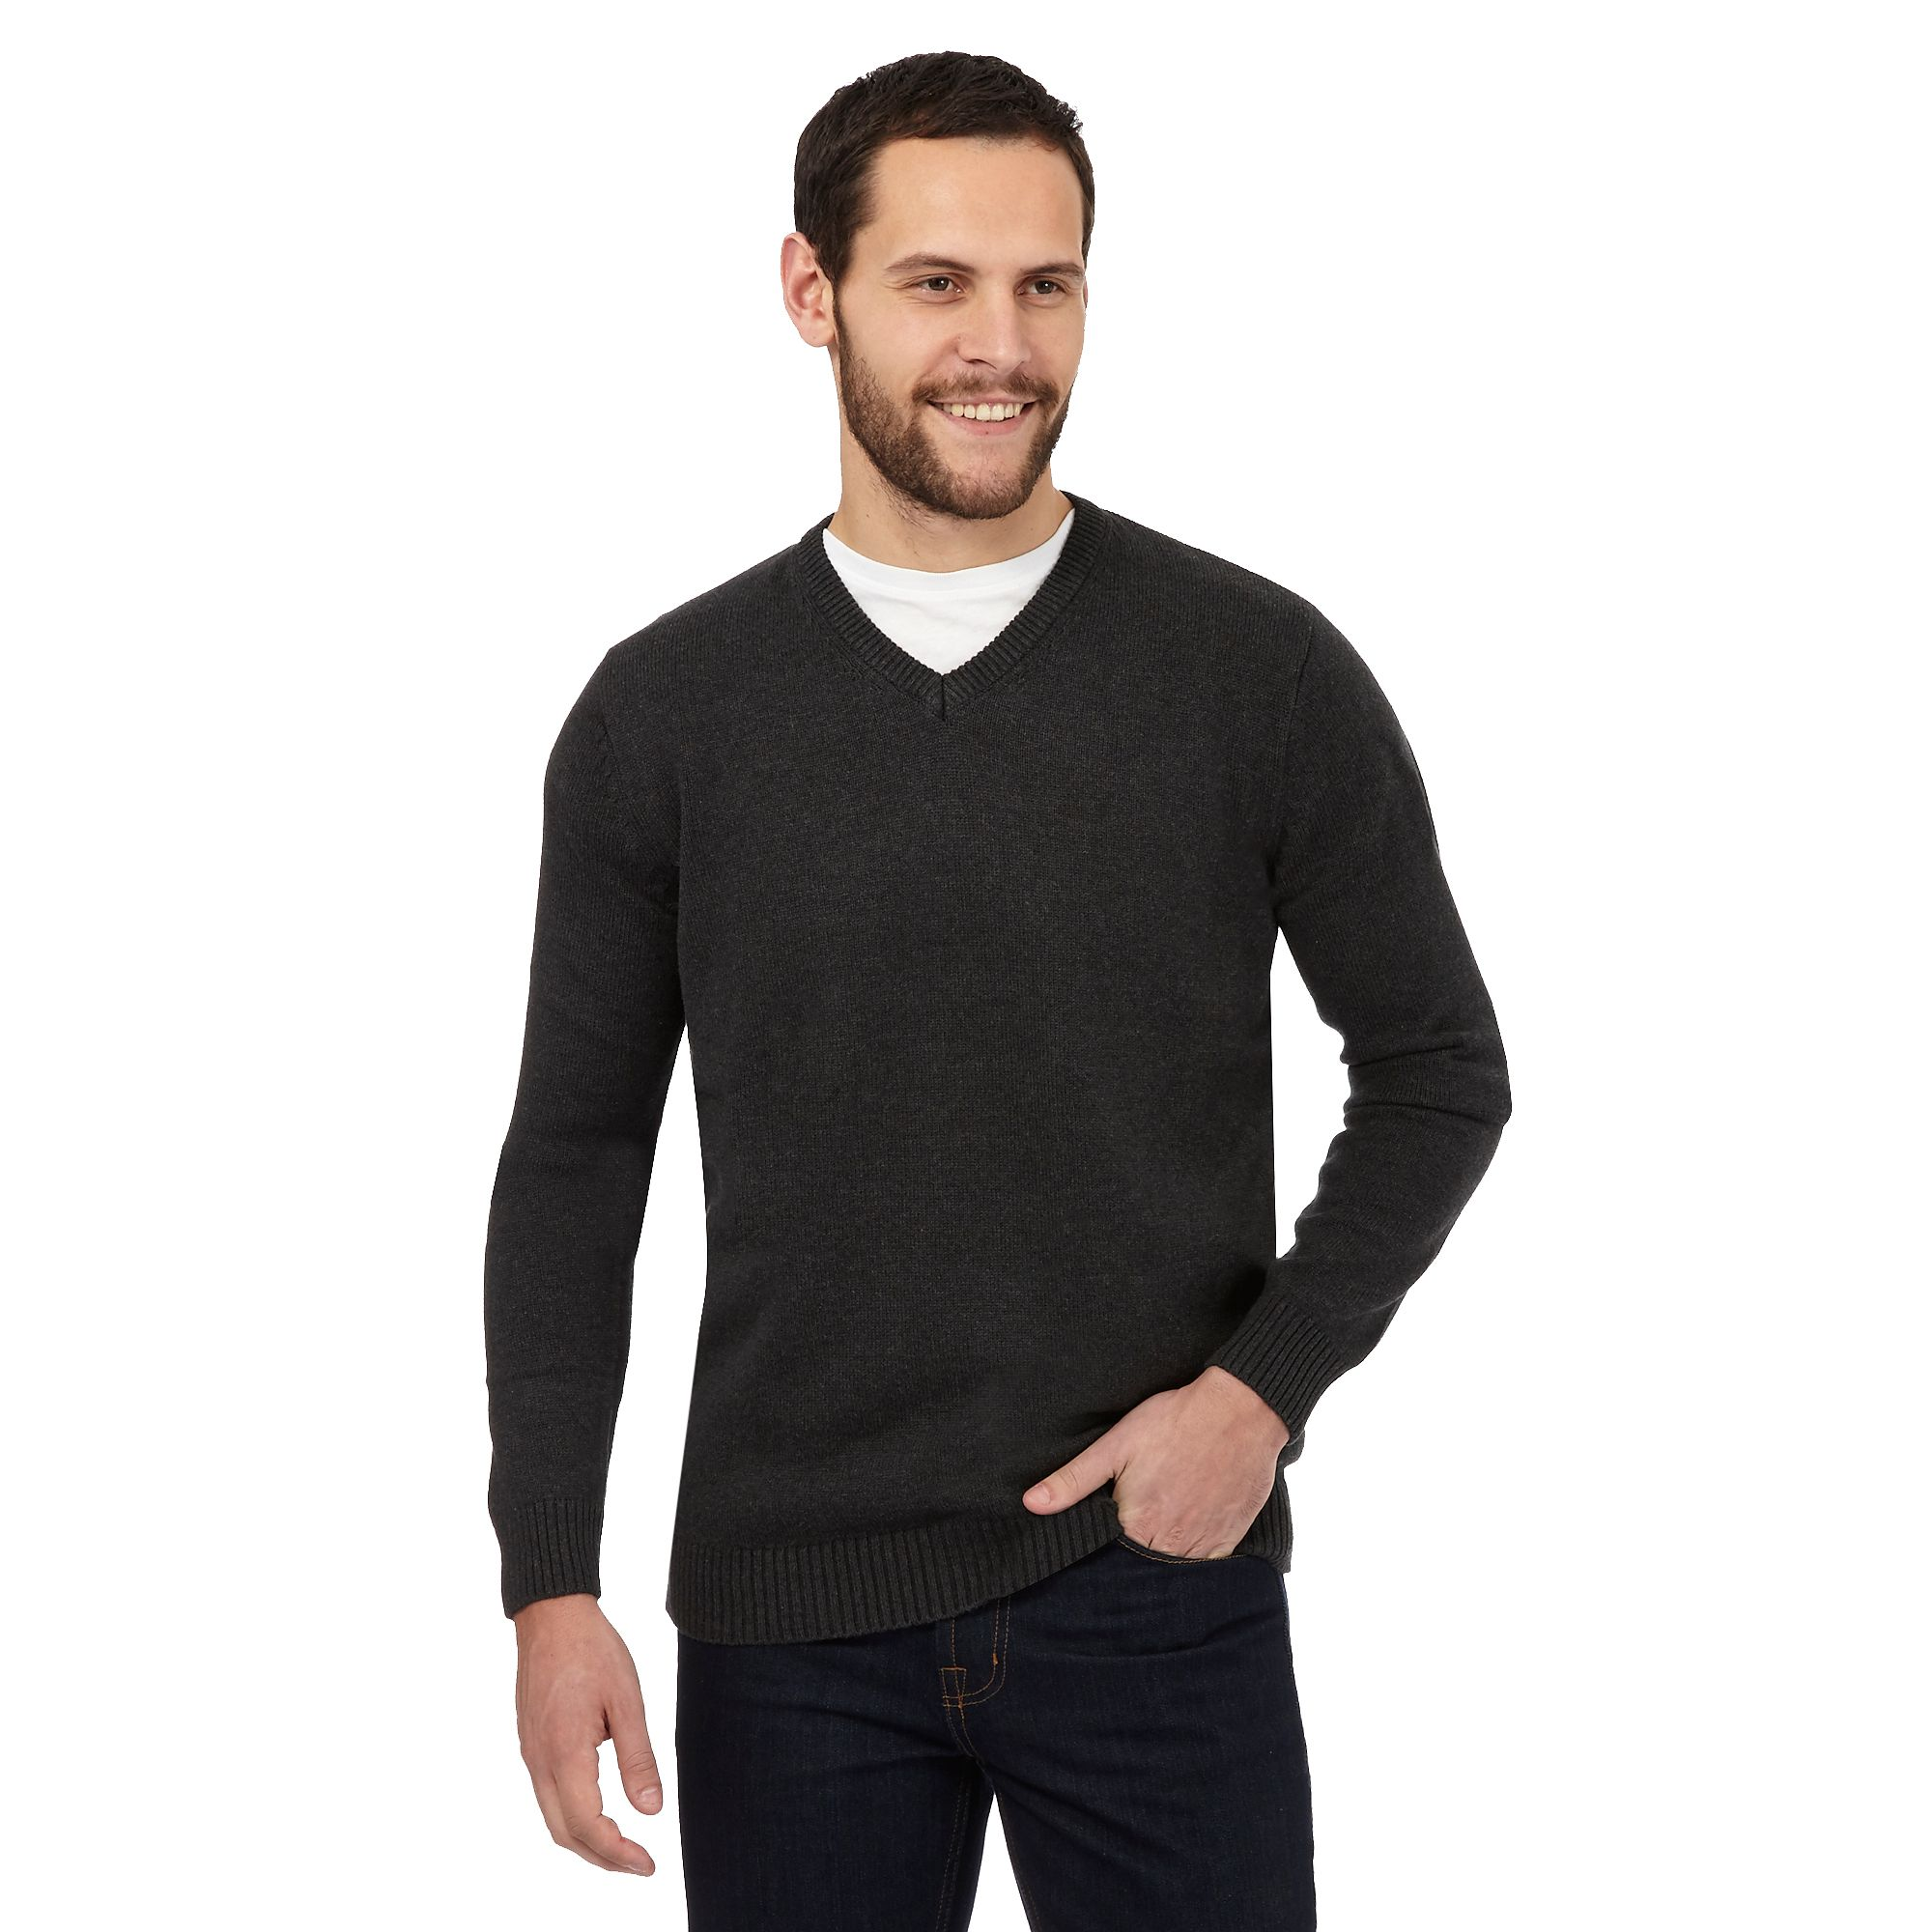 V-Neck Sweaters A classic knitwear design, V-neck sweaters for men are an essential part of the business wardrobe, combining with suit and tie for a smart office outfit. Men's V-neck sweaters can also work in a casual look, with loose fitting designs matching well with jeans or chinos.